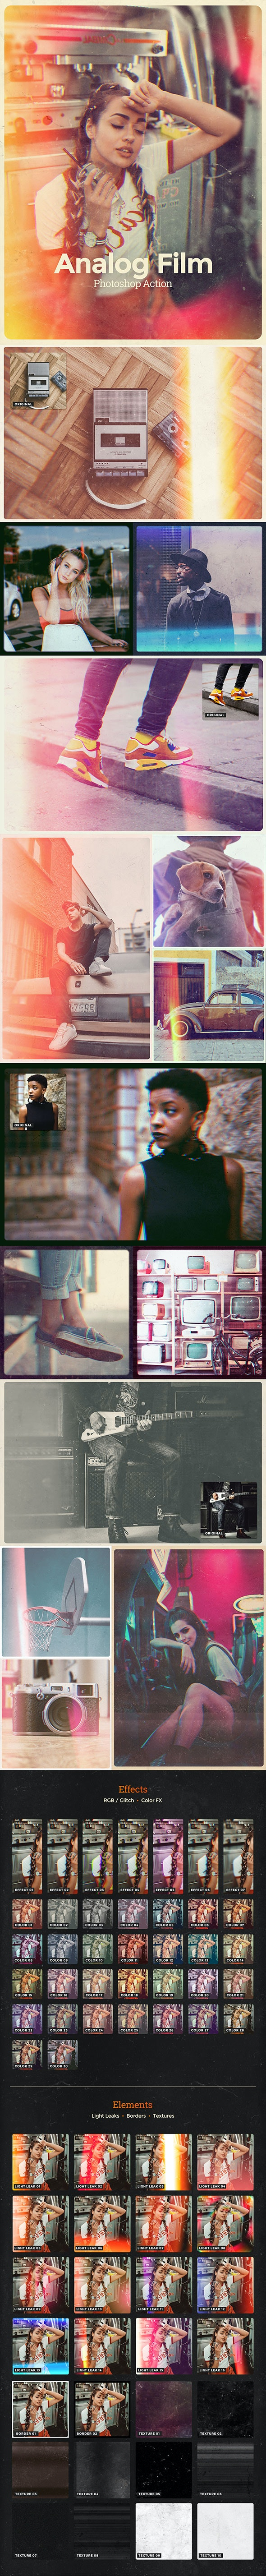 Analog Film Photoshop Action - Photo Effects Actions